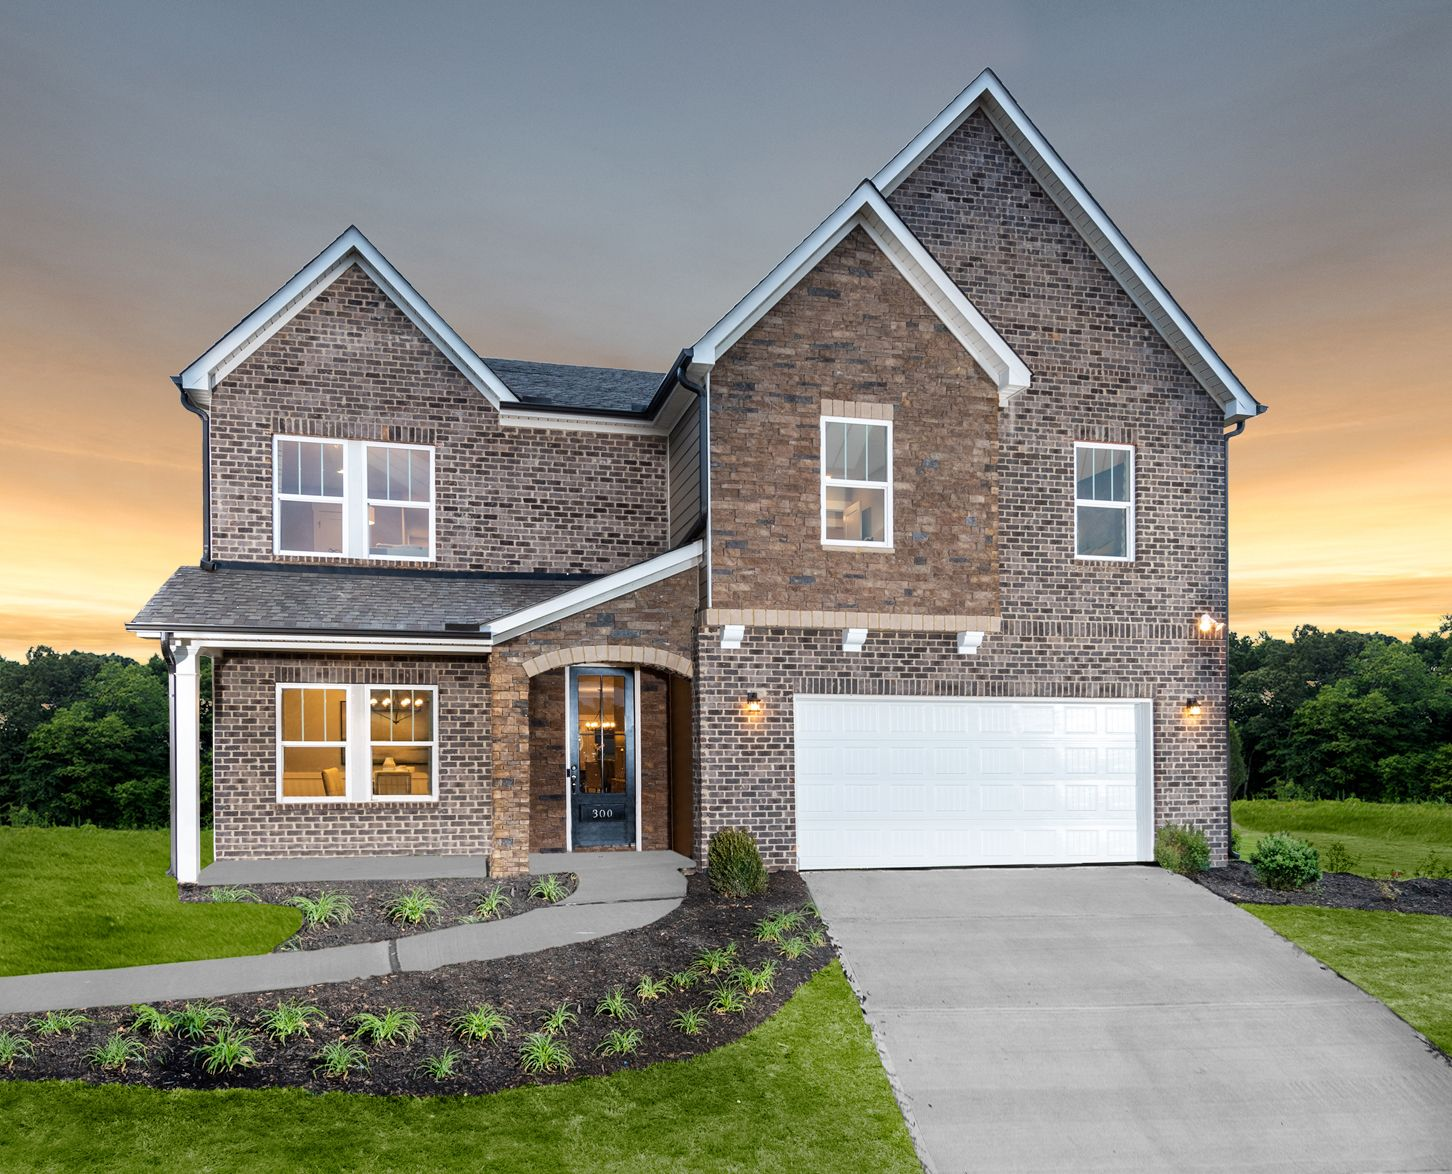 Find your dream home at Lost River.